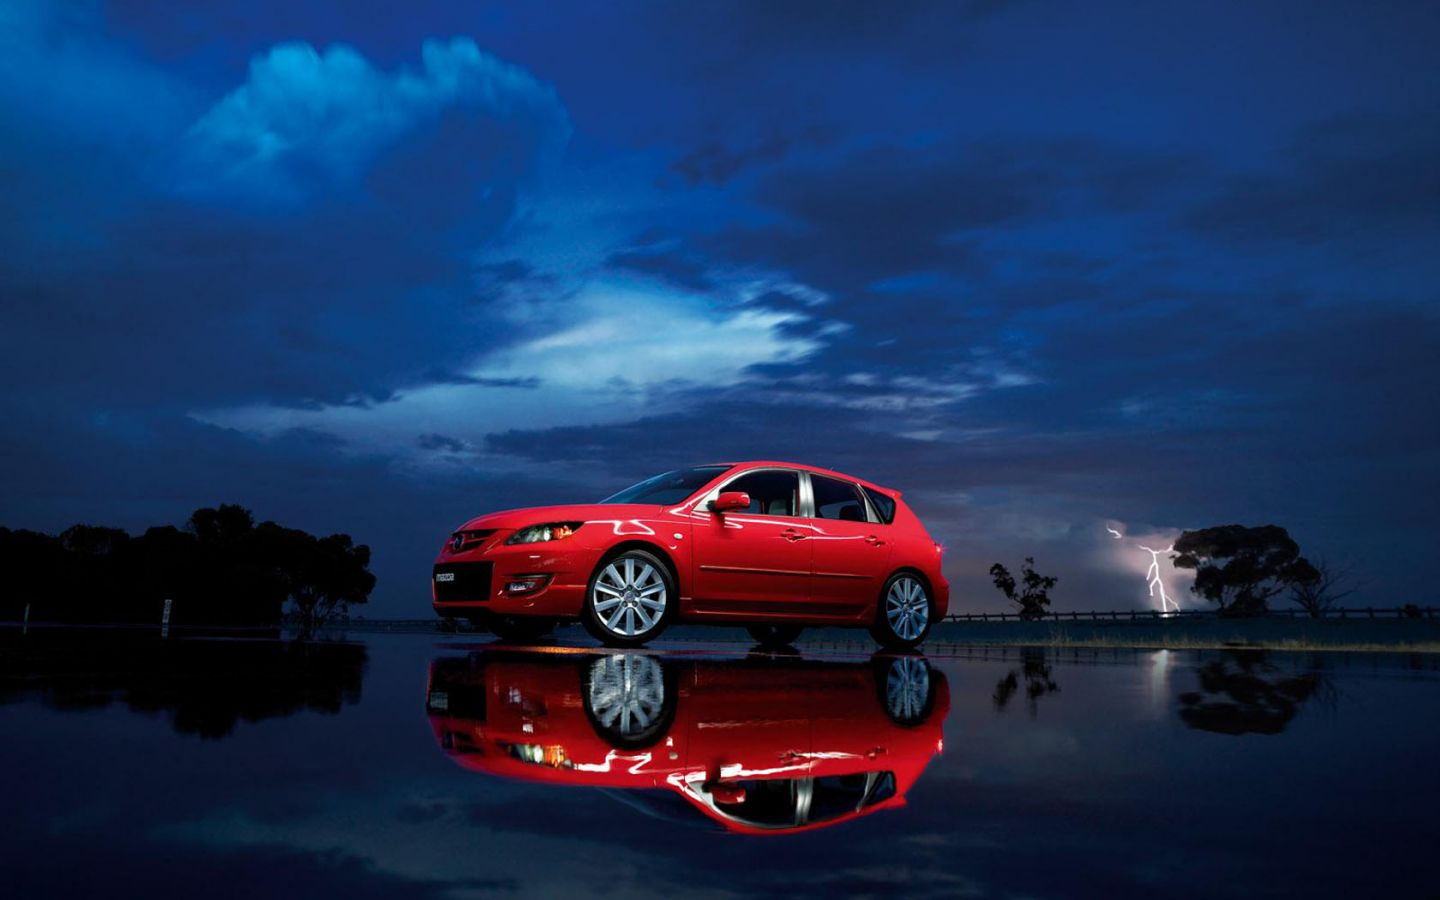 http://1.bp.blogspot.com/-pRe2apAD1bA/TbudmxtQs9I/AAAAAAAAArg/wKsy1b4ymsQ/s1600/mazda_3_mps_red_reflection_wallpaper_-_1440x900.jpg